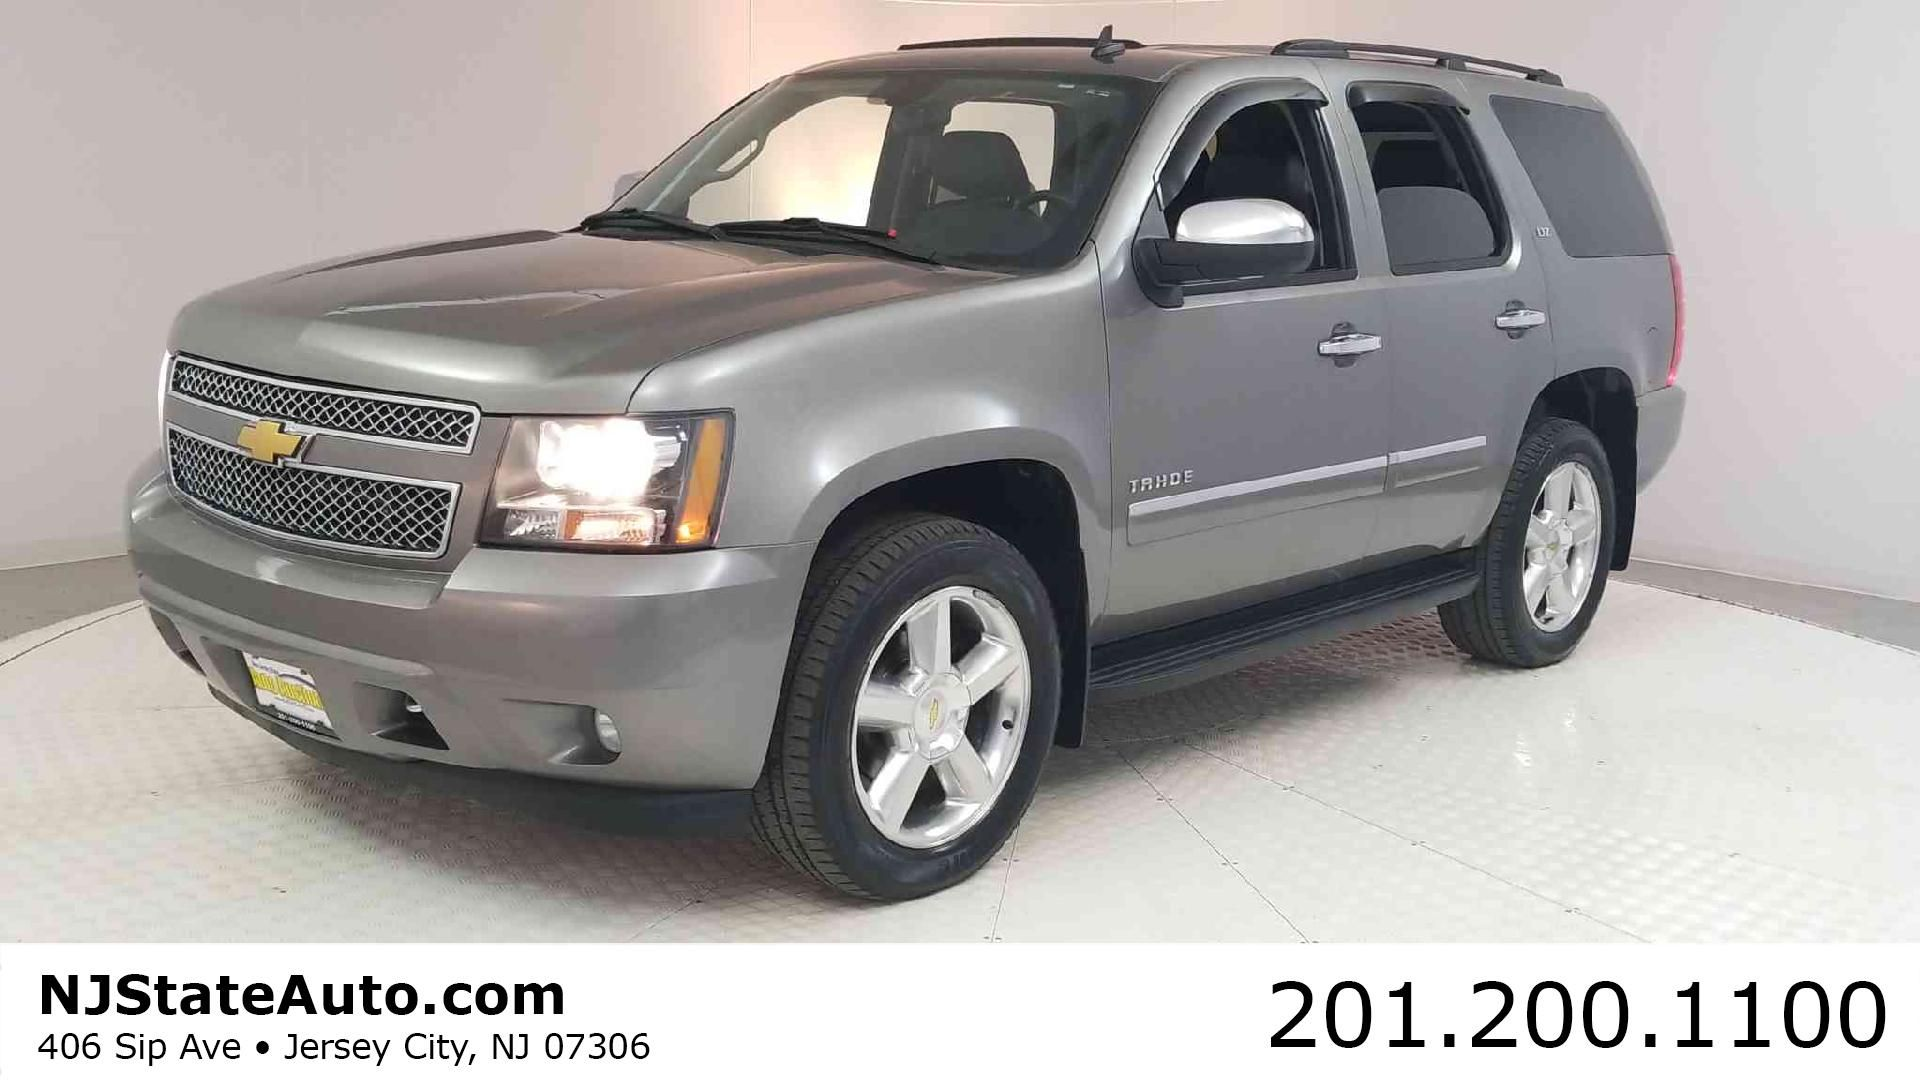 2012 Chevrolet Tahoe 4wd 4dr 1500 Ltz Jersey City Nj Just Listed For Sale At Nj Auto Auction 406 Sip Ave Jersey City N Jacked Up Trucks Chevrolet Tahoe 4 Door Trucks